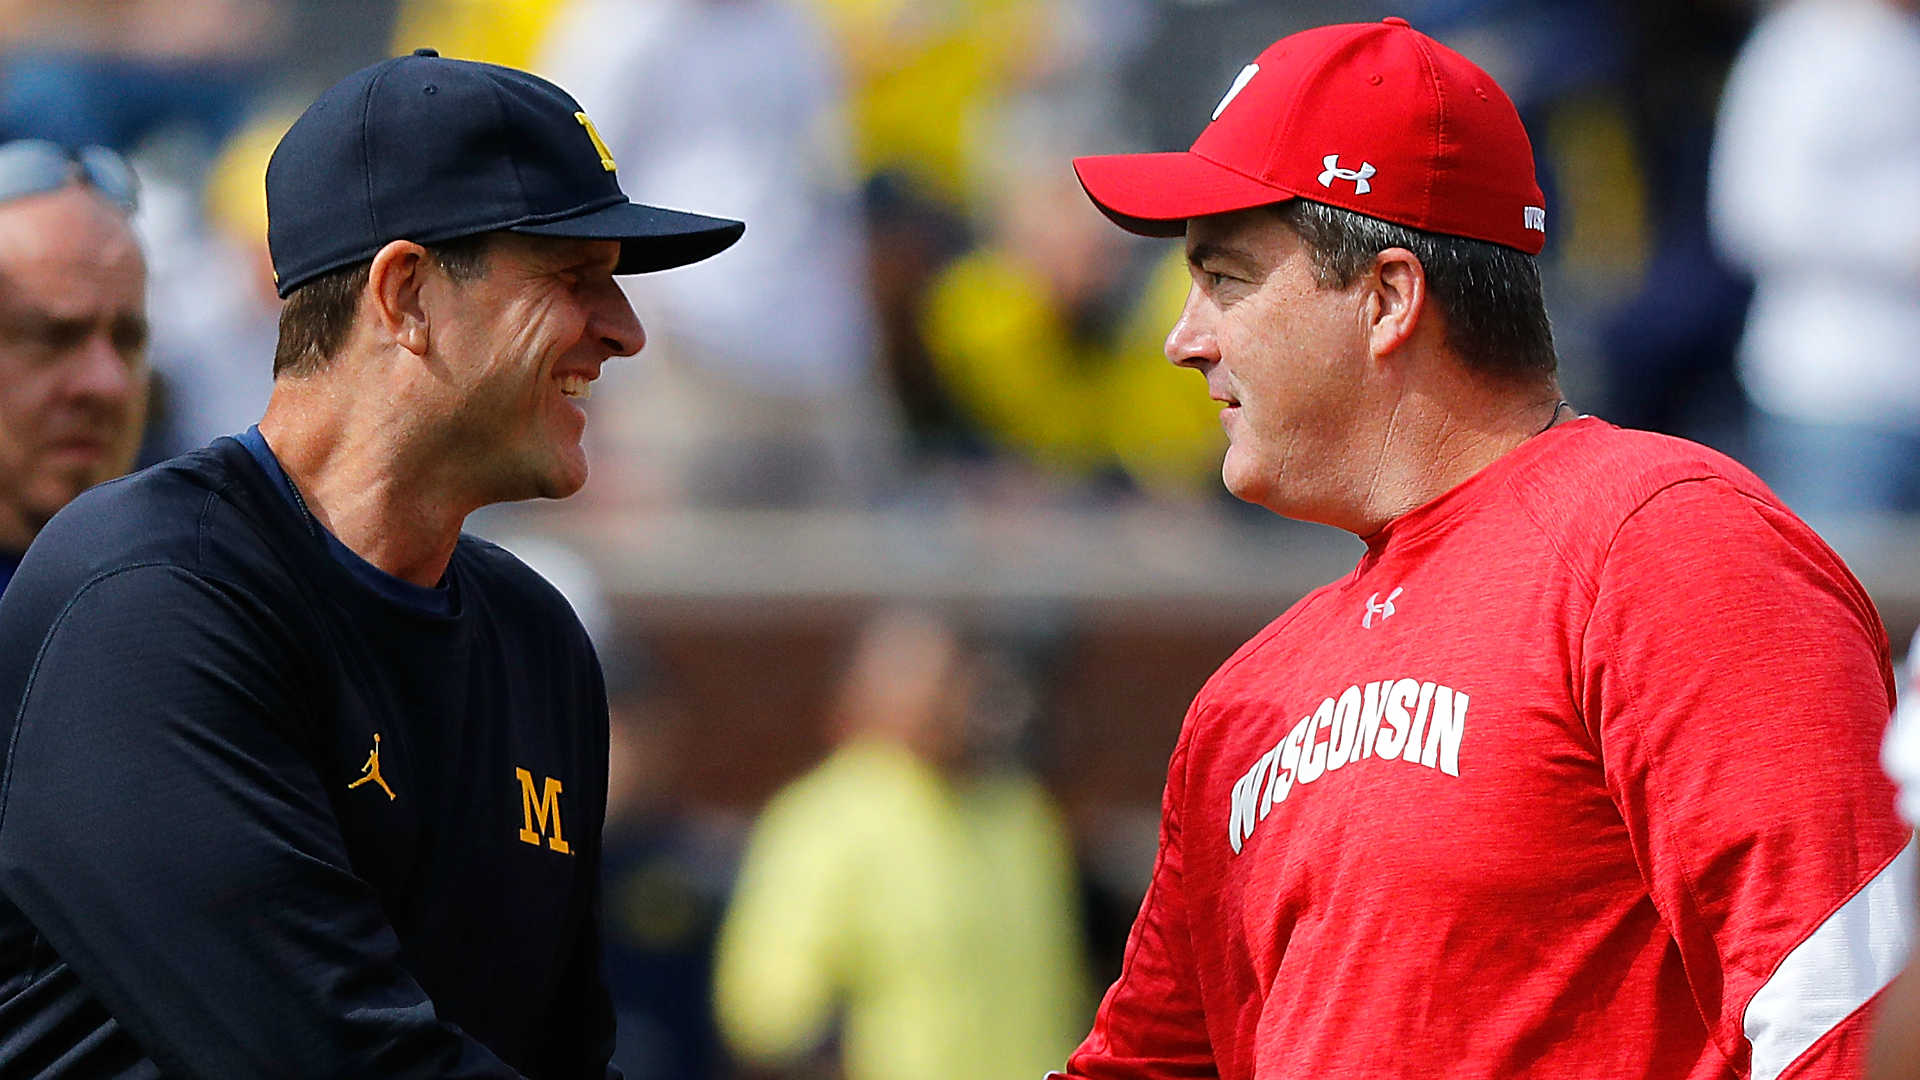 MI  vs. Wisconsin: Where to watch, how to listen